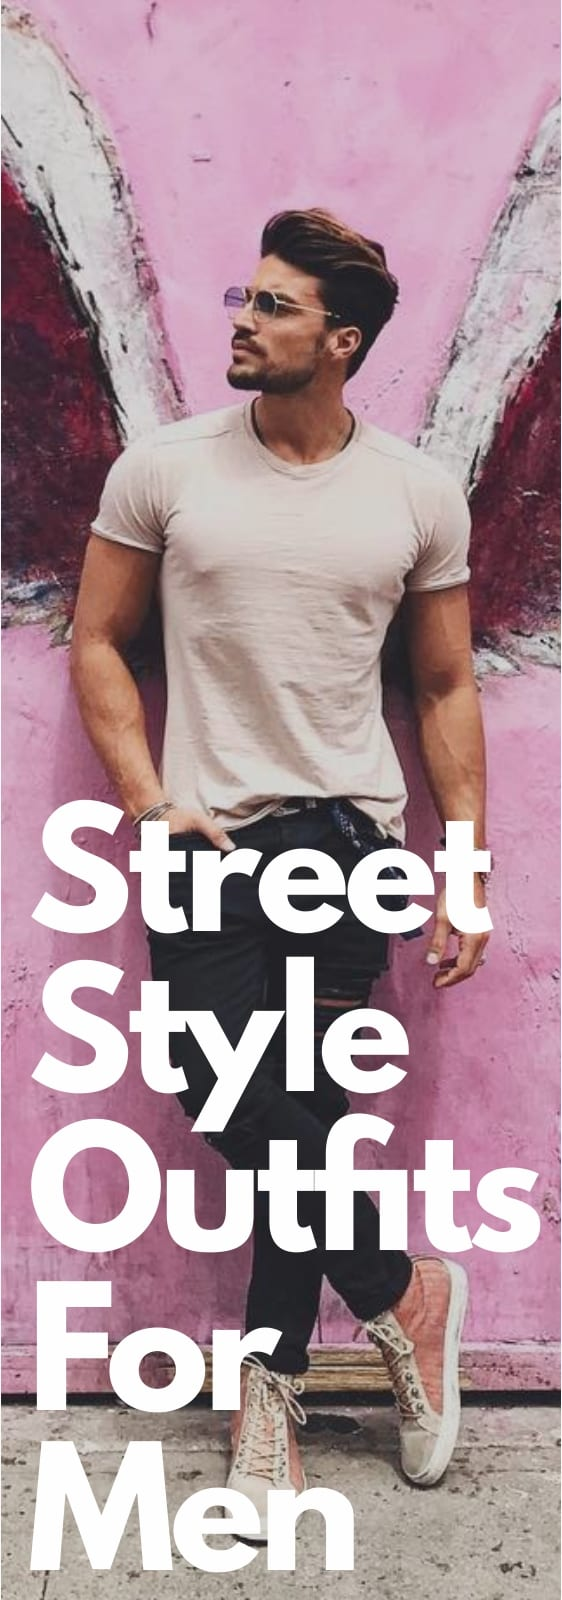 Best Street Style Outfit Ideas For Men